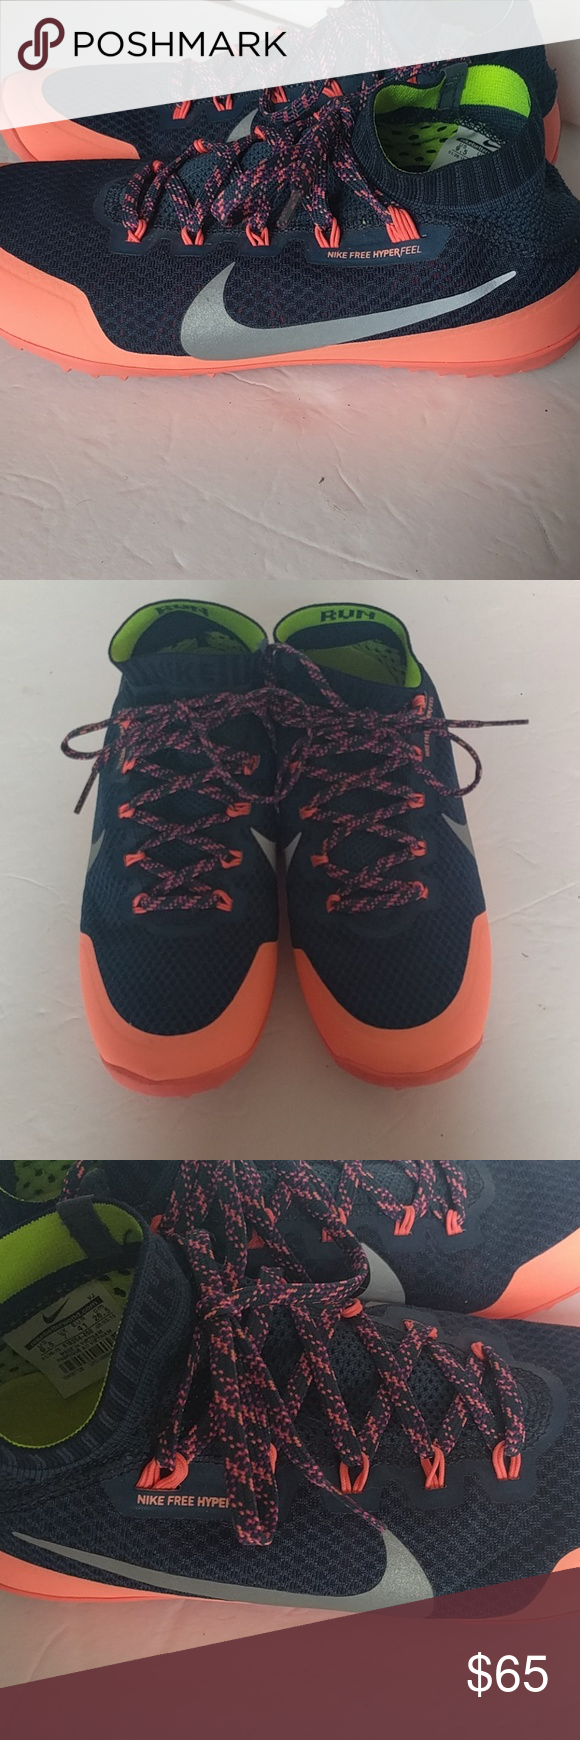 Nike free hyperfeel running shoes These are meant to feel like a barefoot  running experience ee012895c